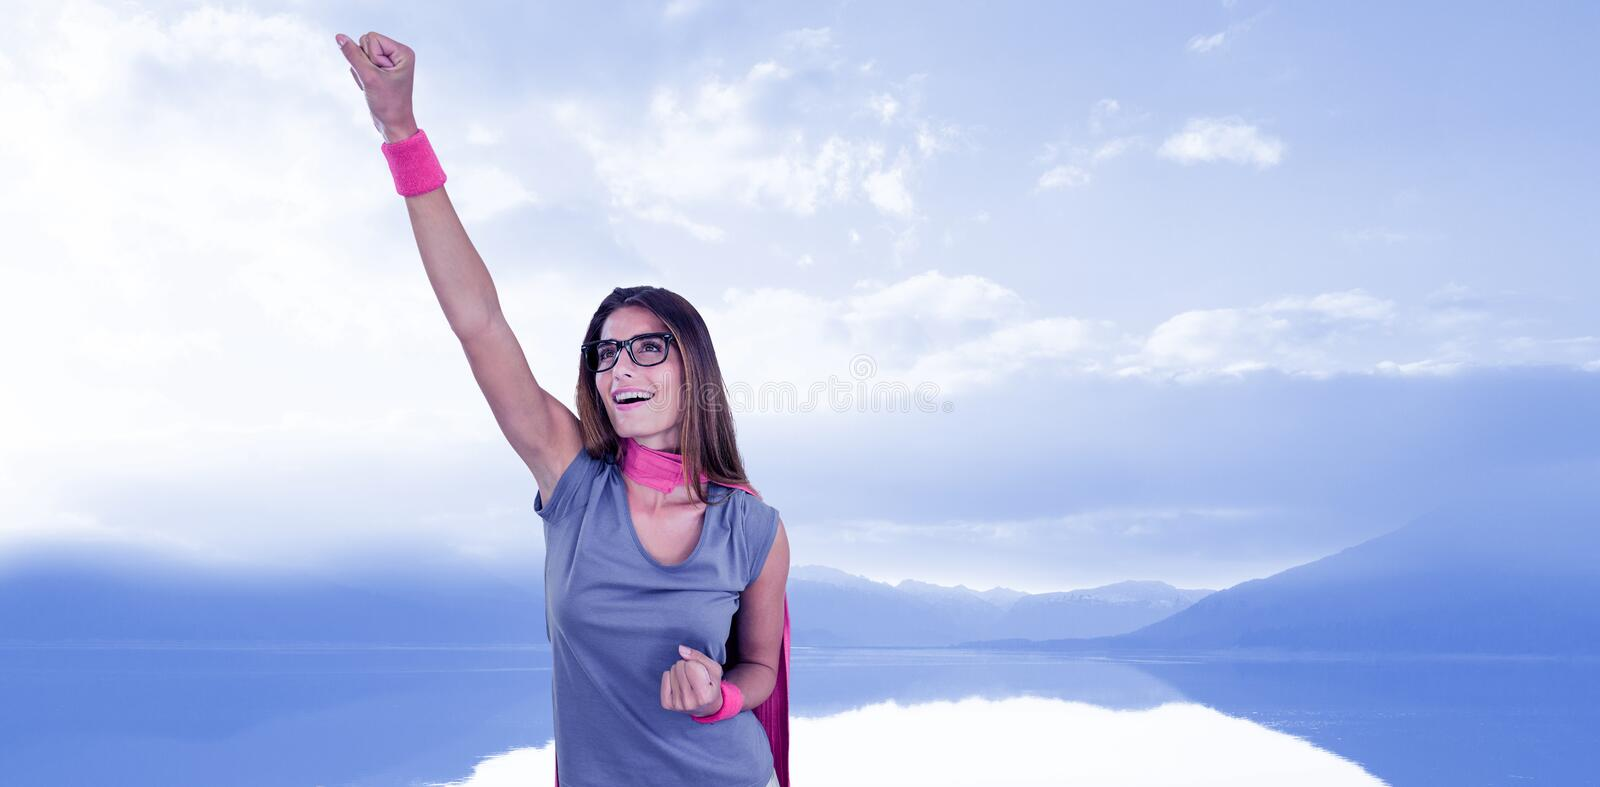 Composite image of smiling woman in superhero costume with arm raised stock photography